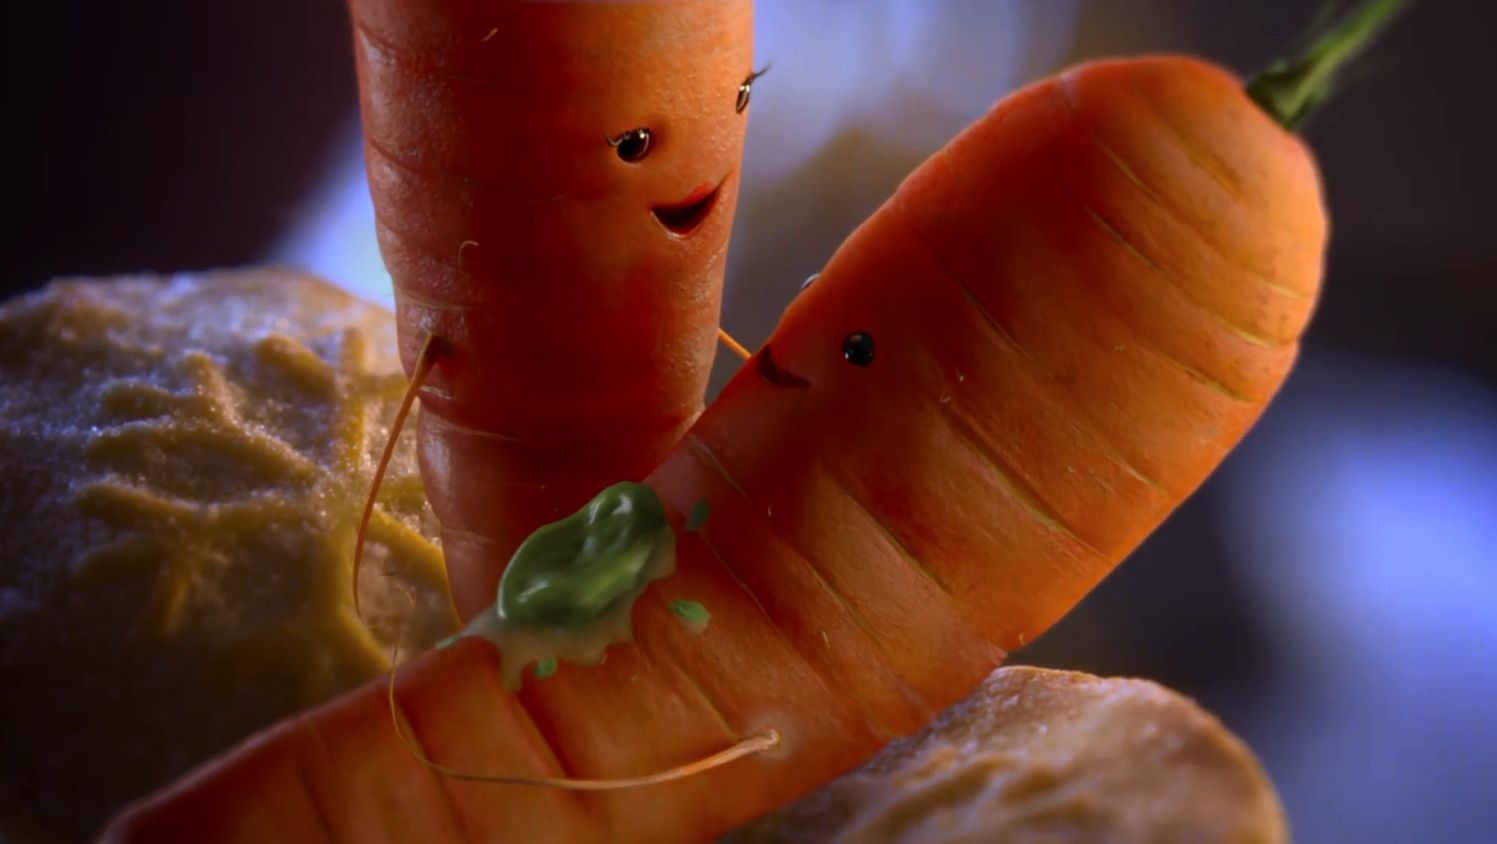 Forget The John Lewis Ad, Aldi's Kevin The Carrot Is Back And Looking For